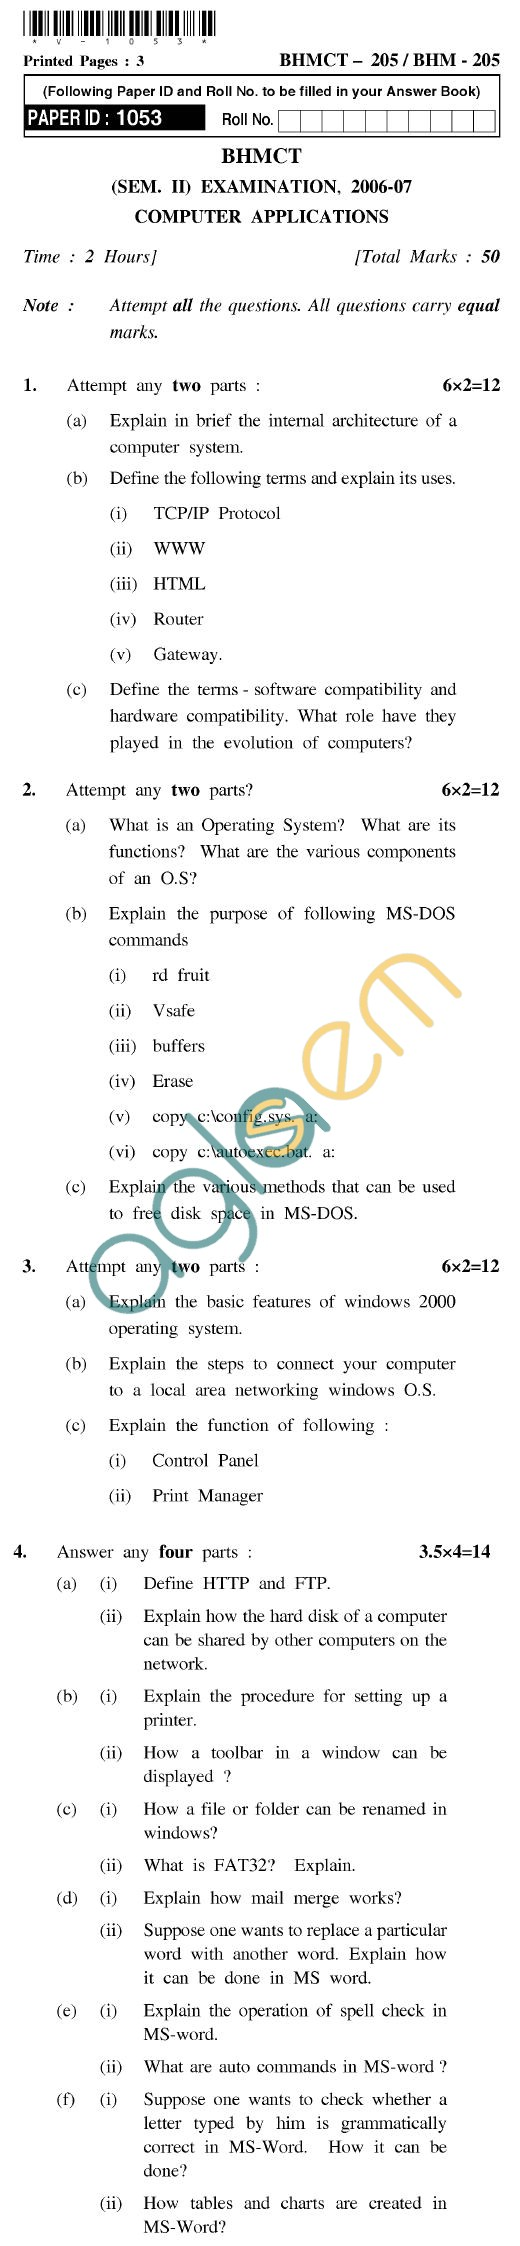 UPTU BHMCT Question Papers - BHMCT-205 - Computer Applications